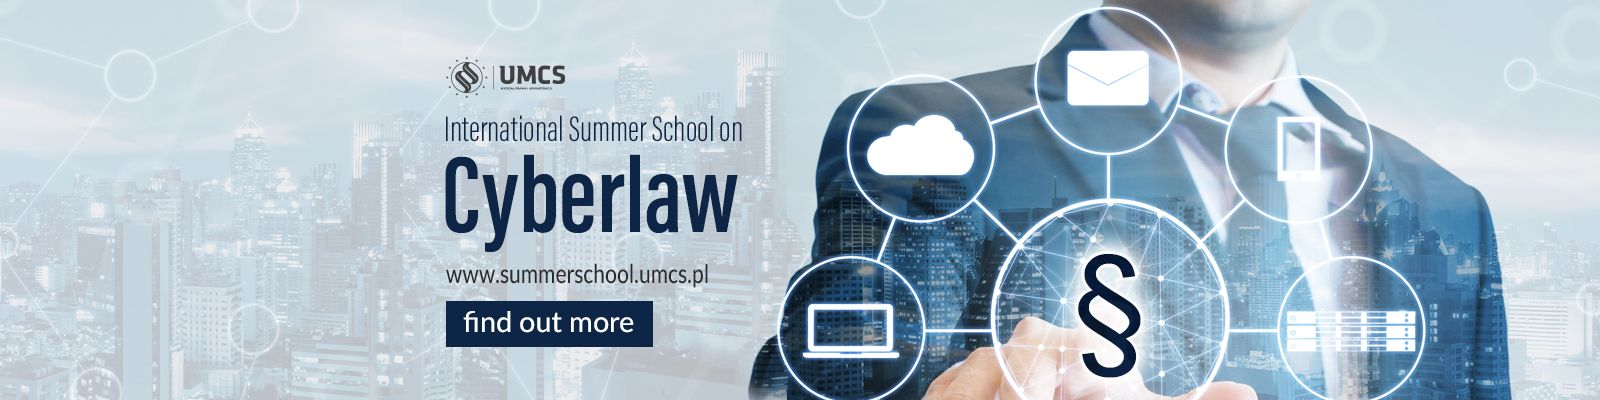 International Summer School on Cyberlaw